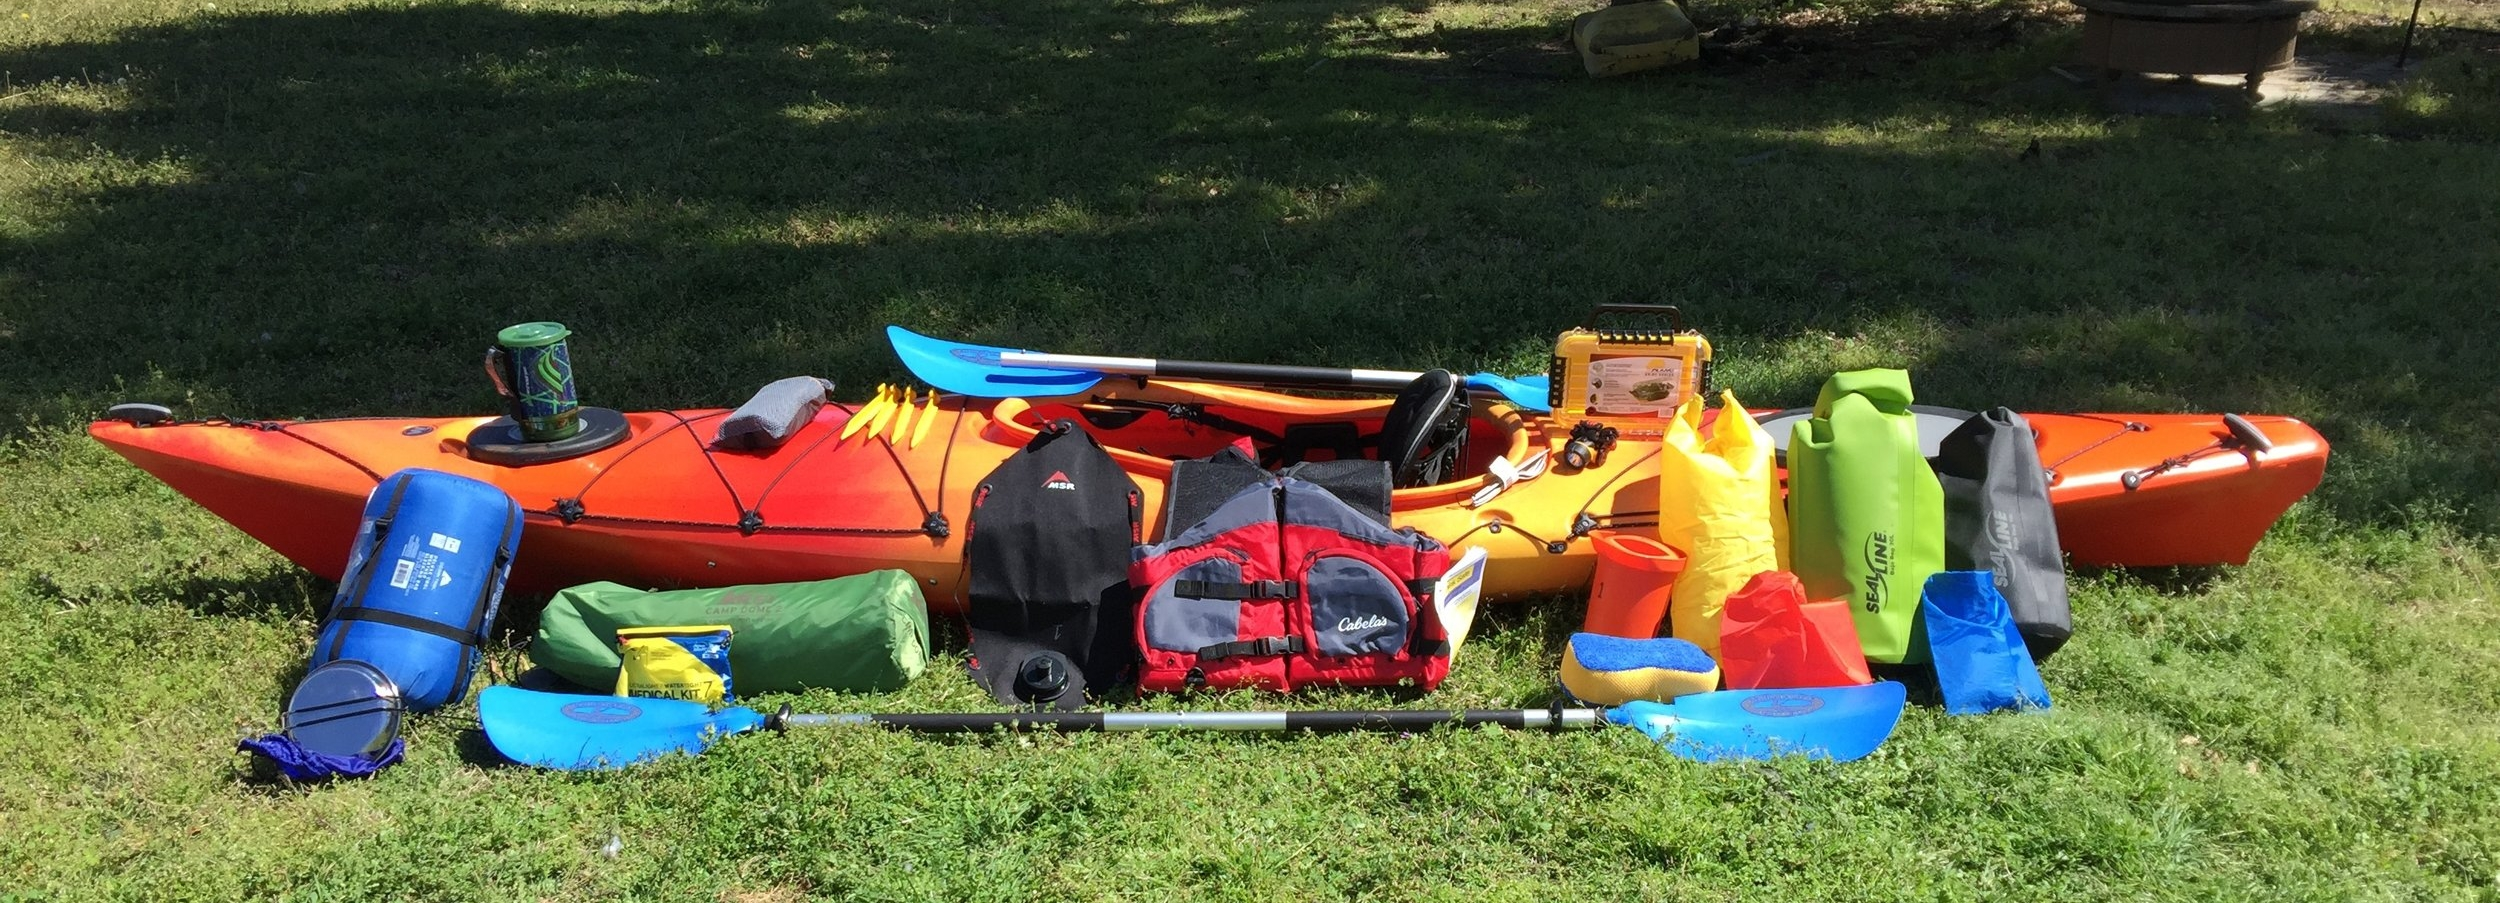 All equipment in photo is listed above.